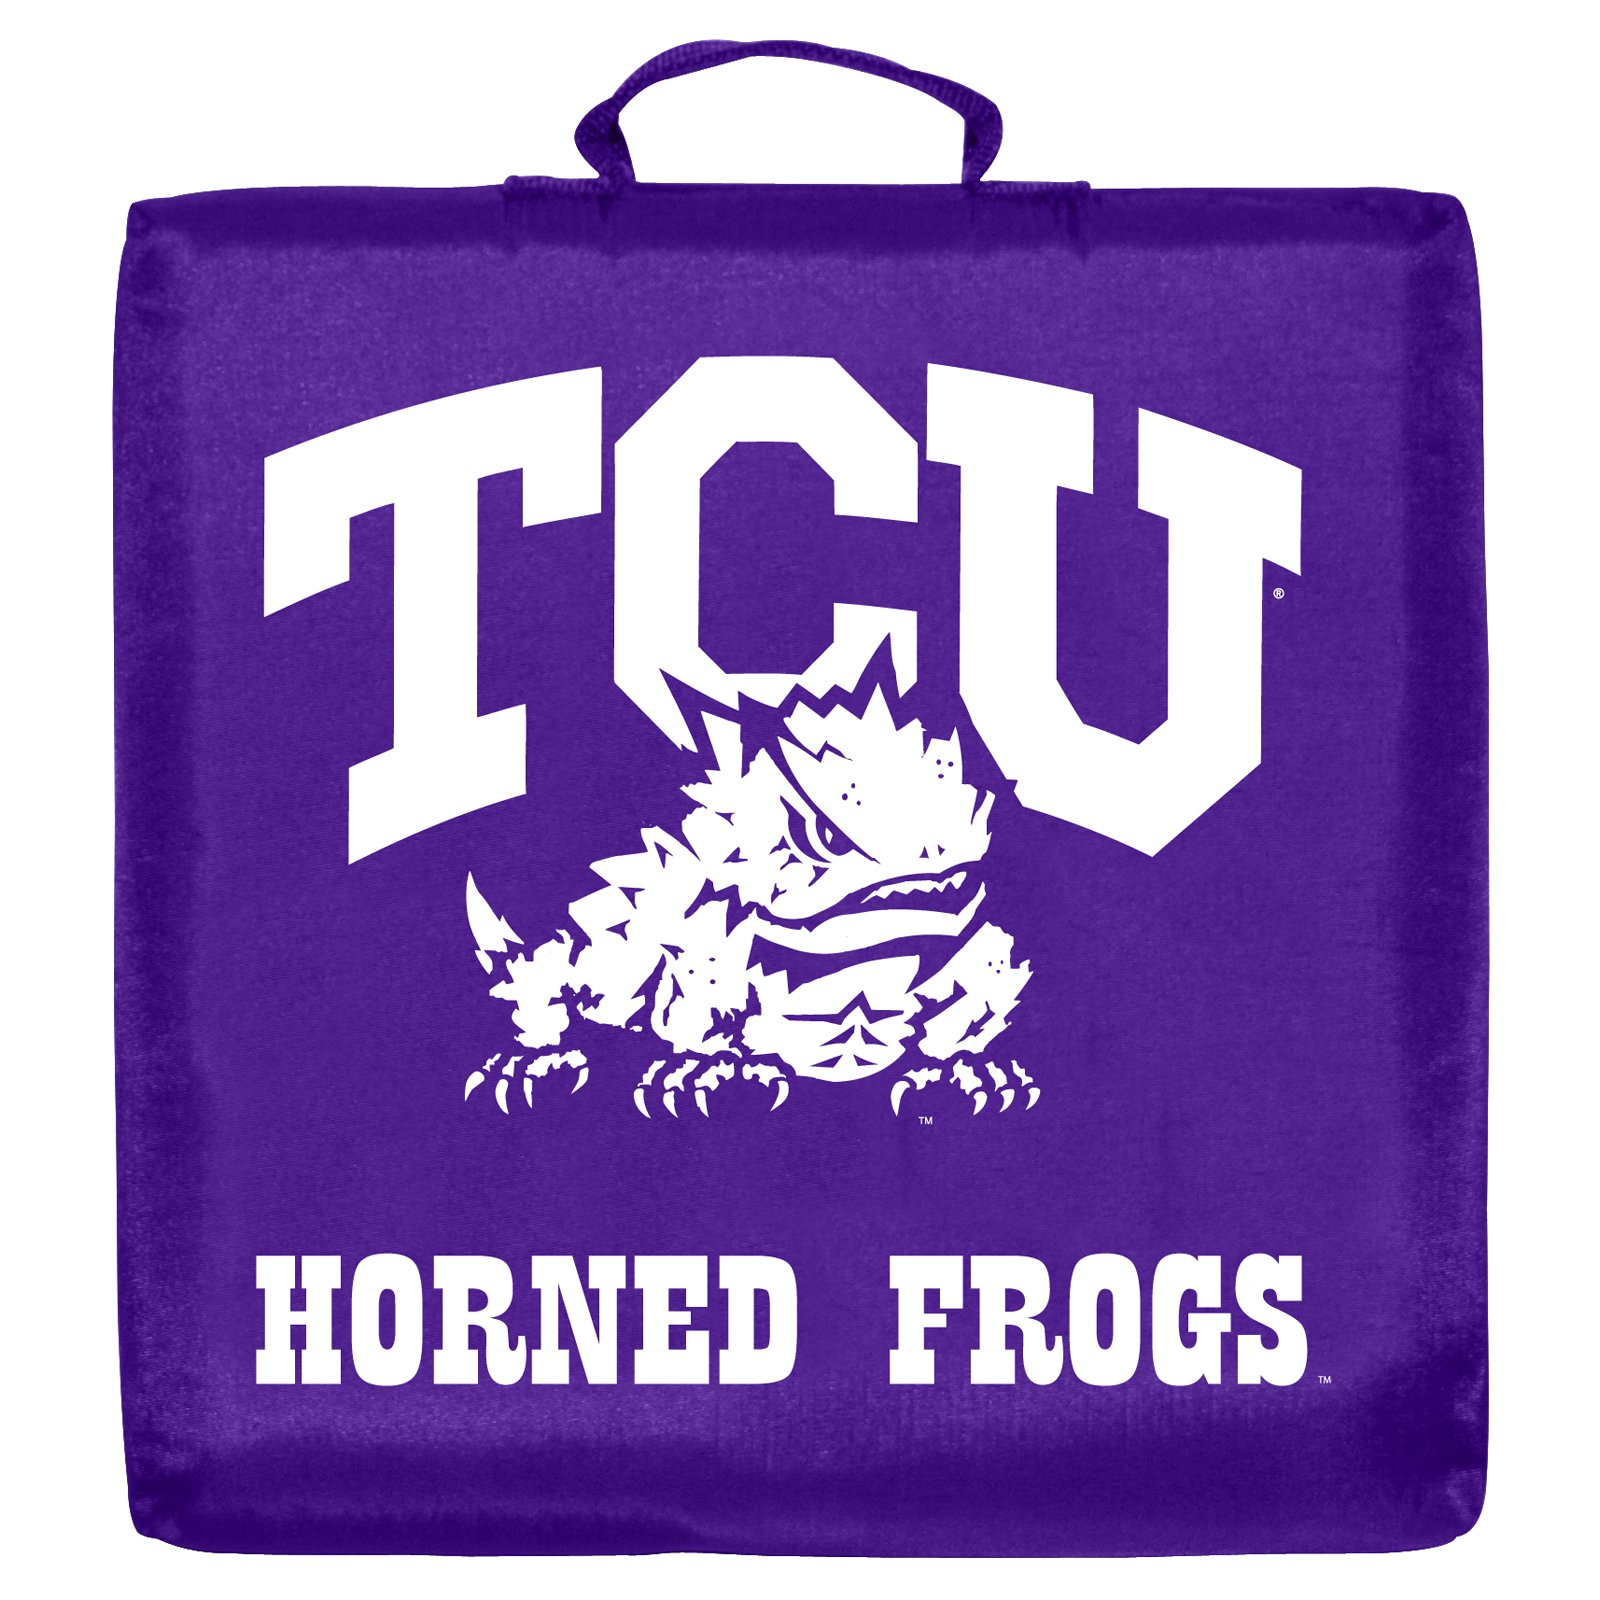 TCU HORNED FROGS OFFICIAL LOGO STADIUM SEAT CUSHION